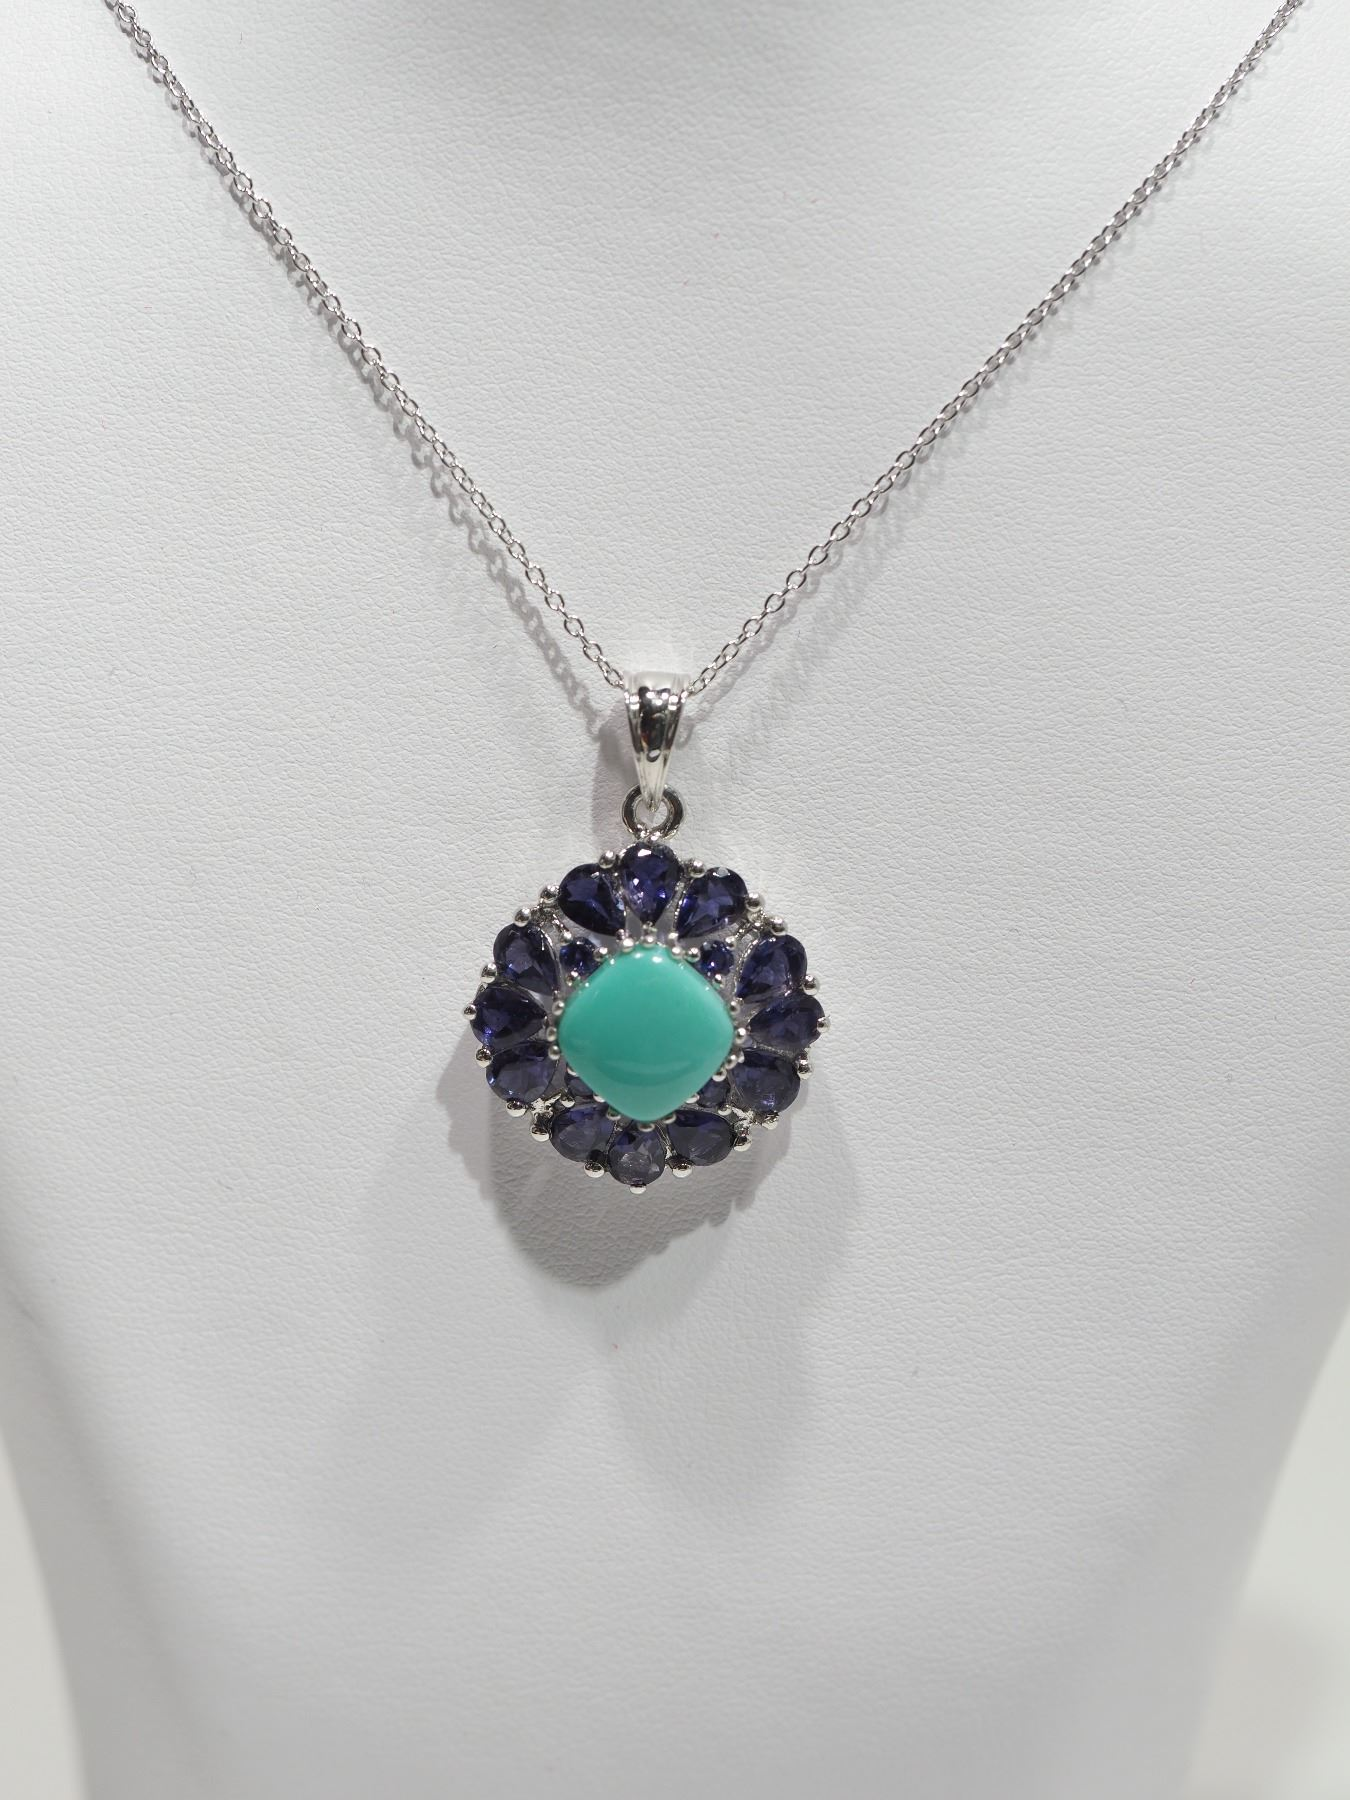 gardens pendant iolite alex necklace kew monroe bluebell lolite shop